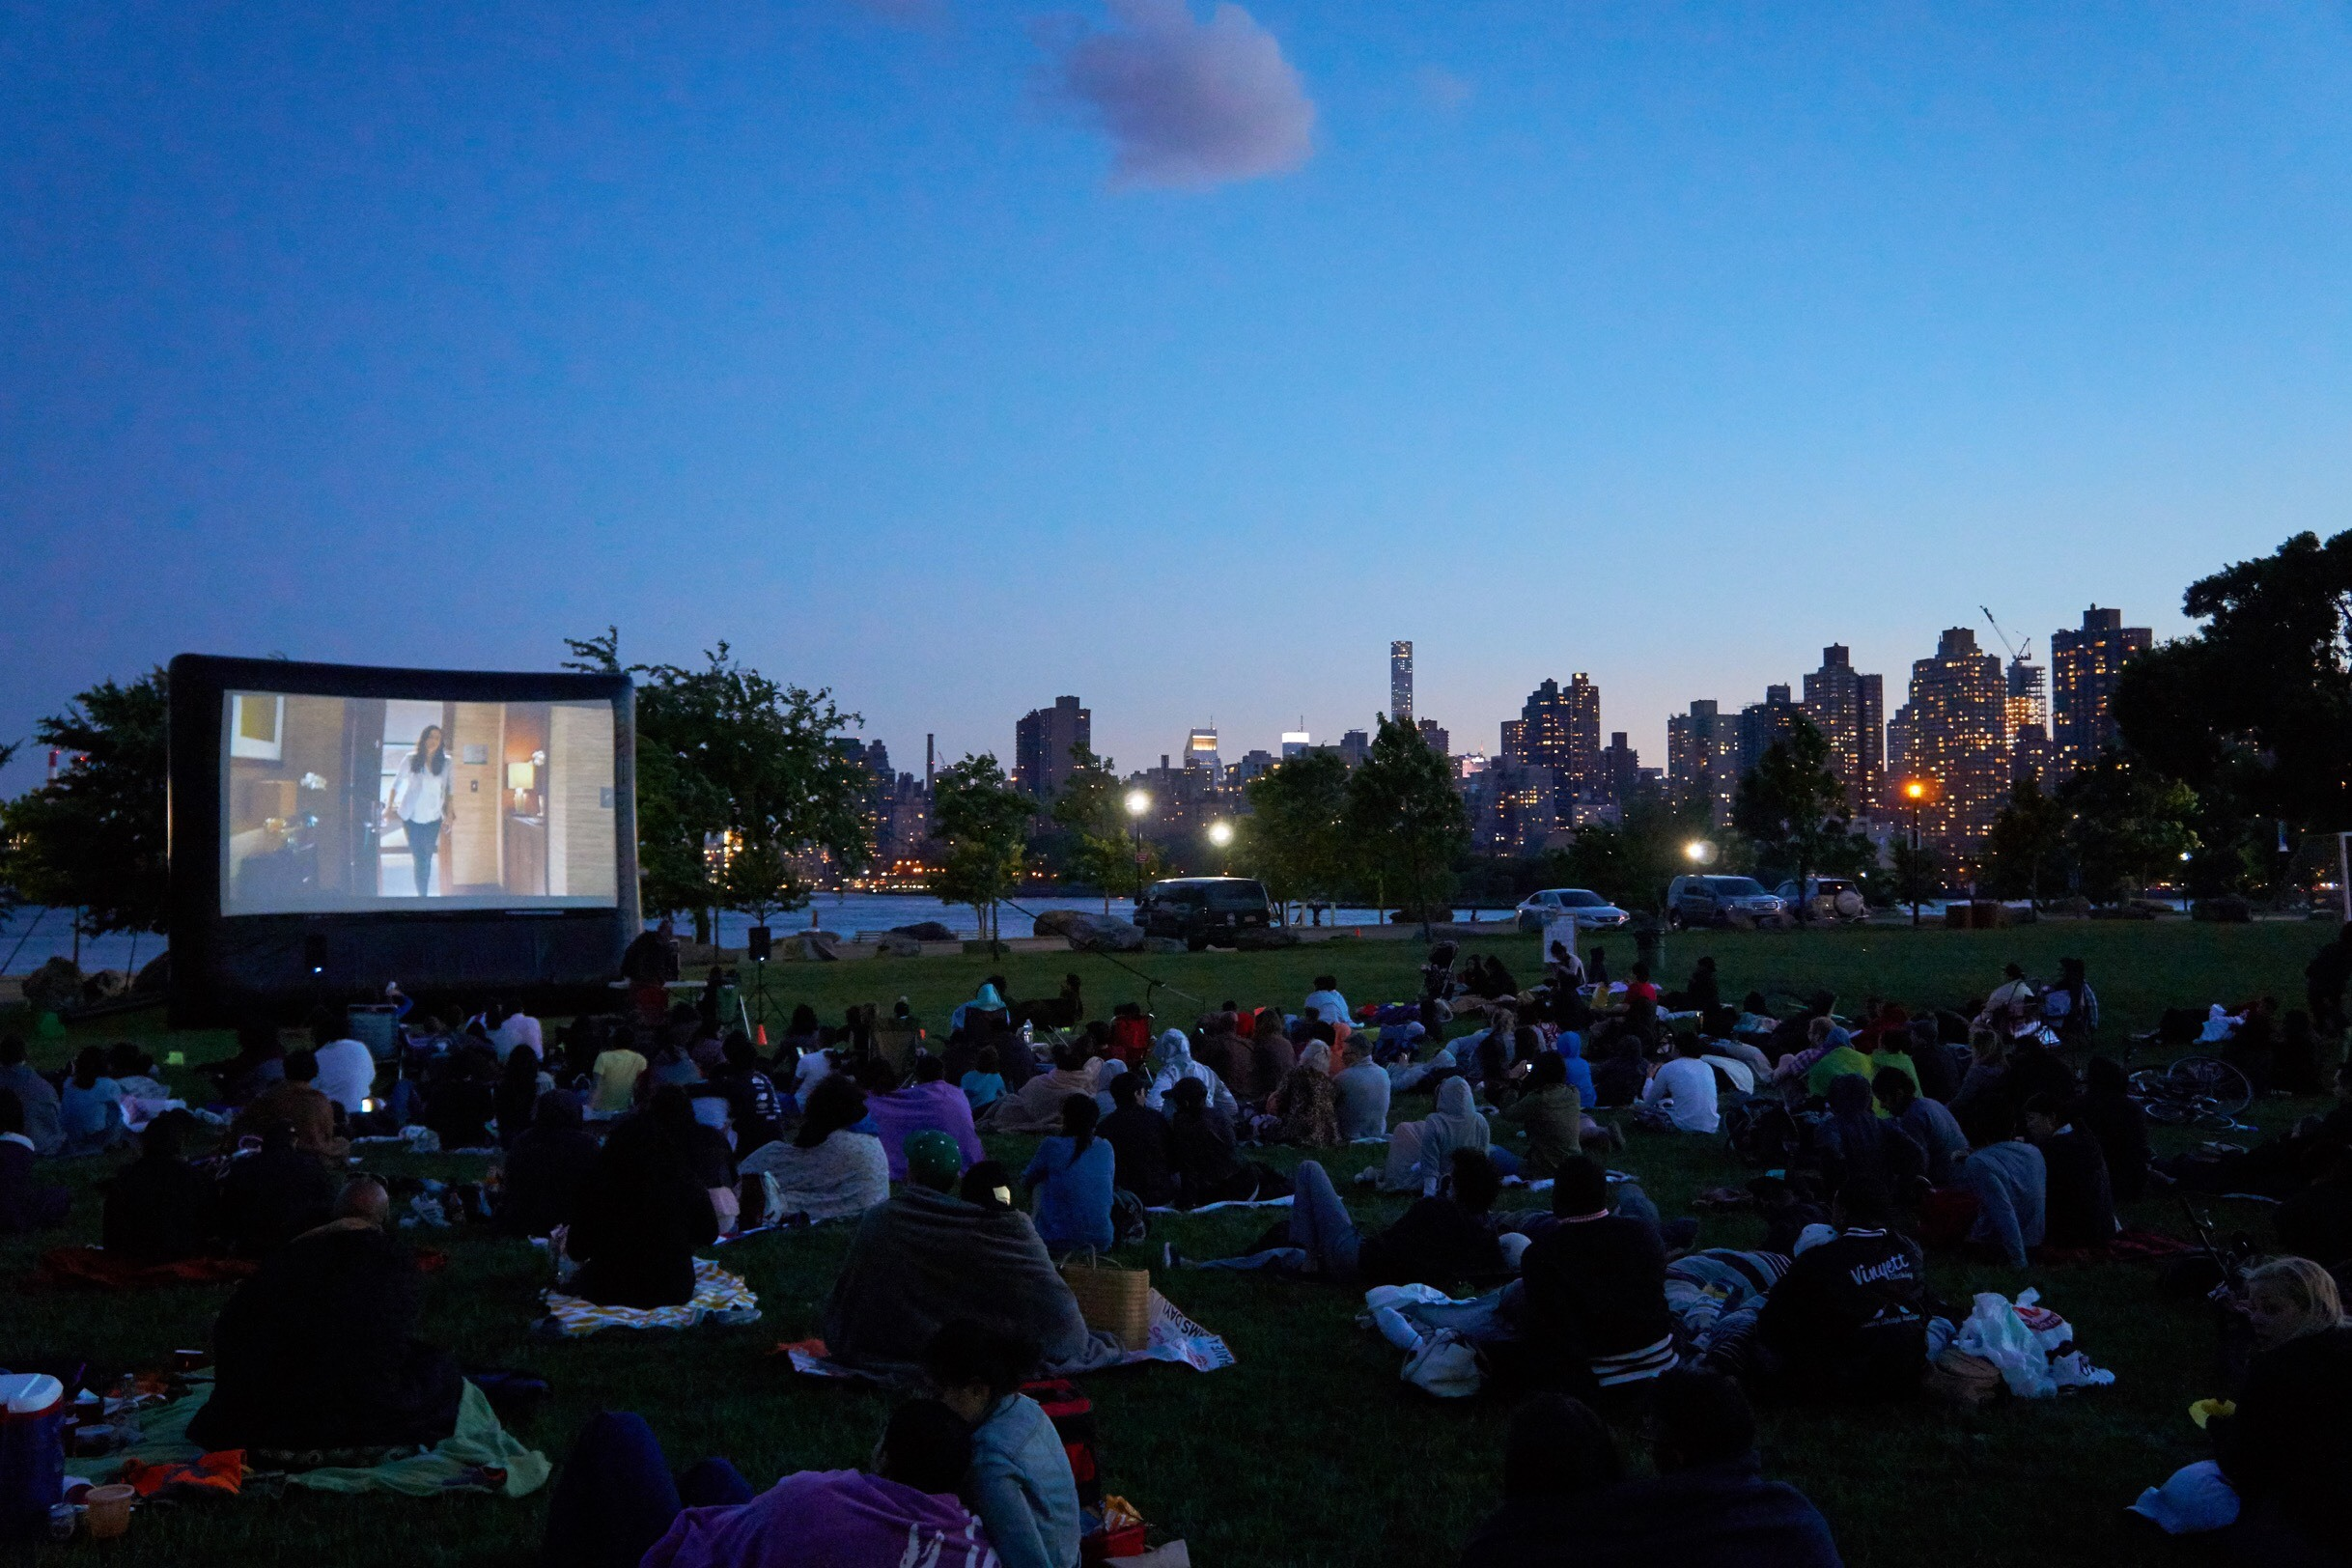 Randalls Island Park   Attractions in Randall's Island, New York on